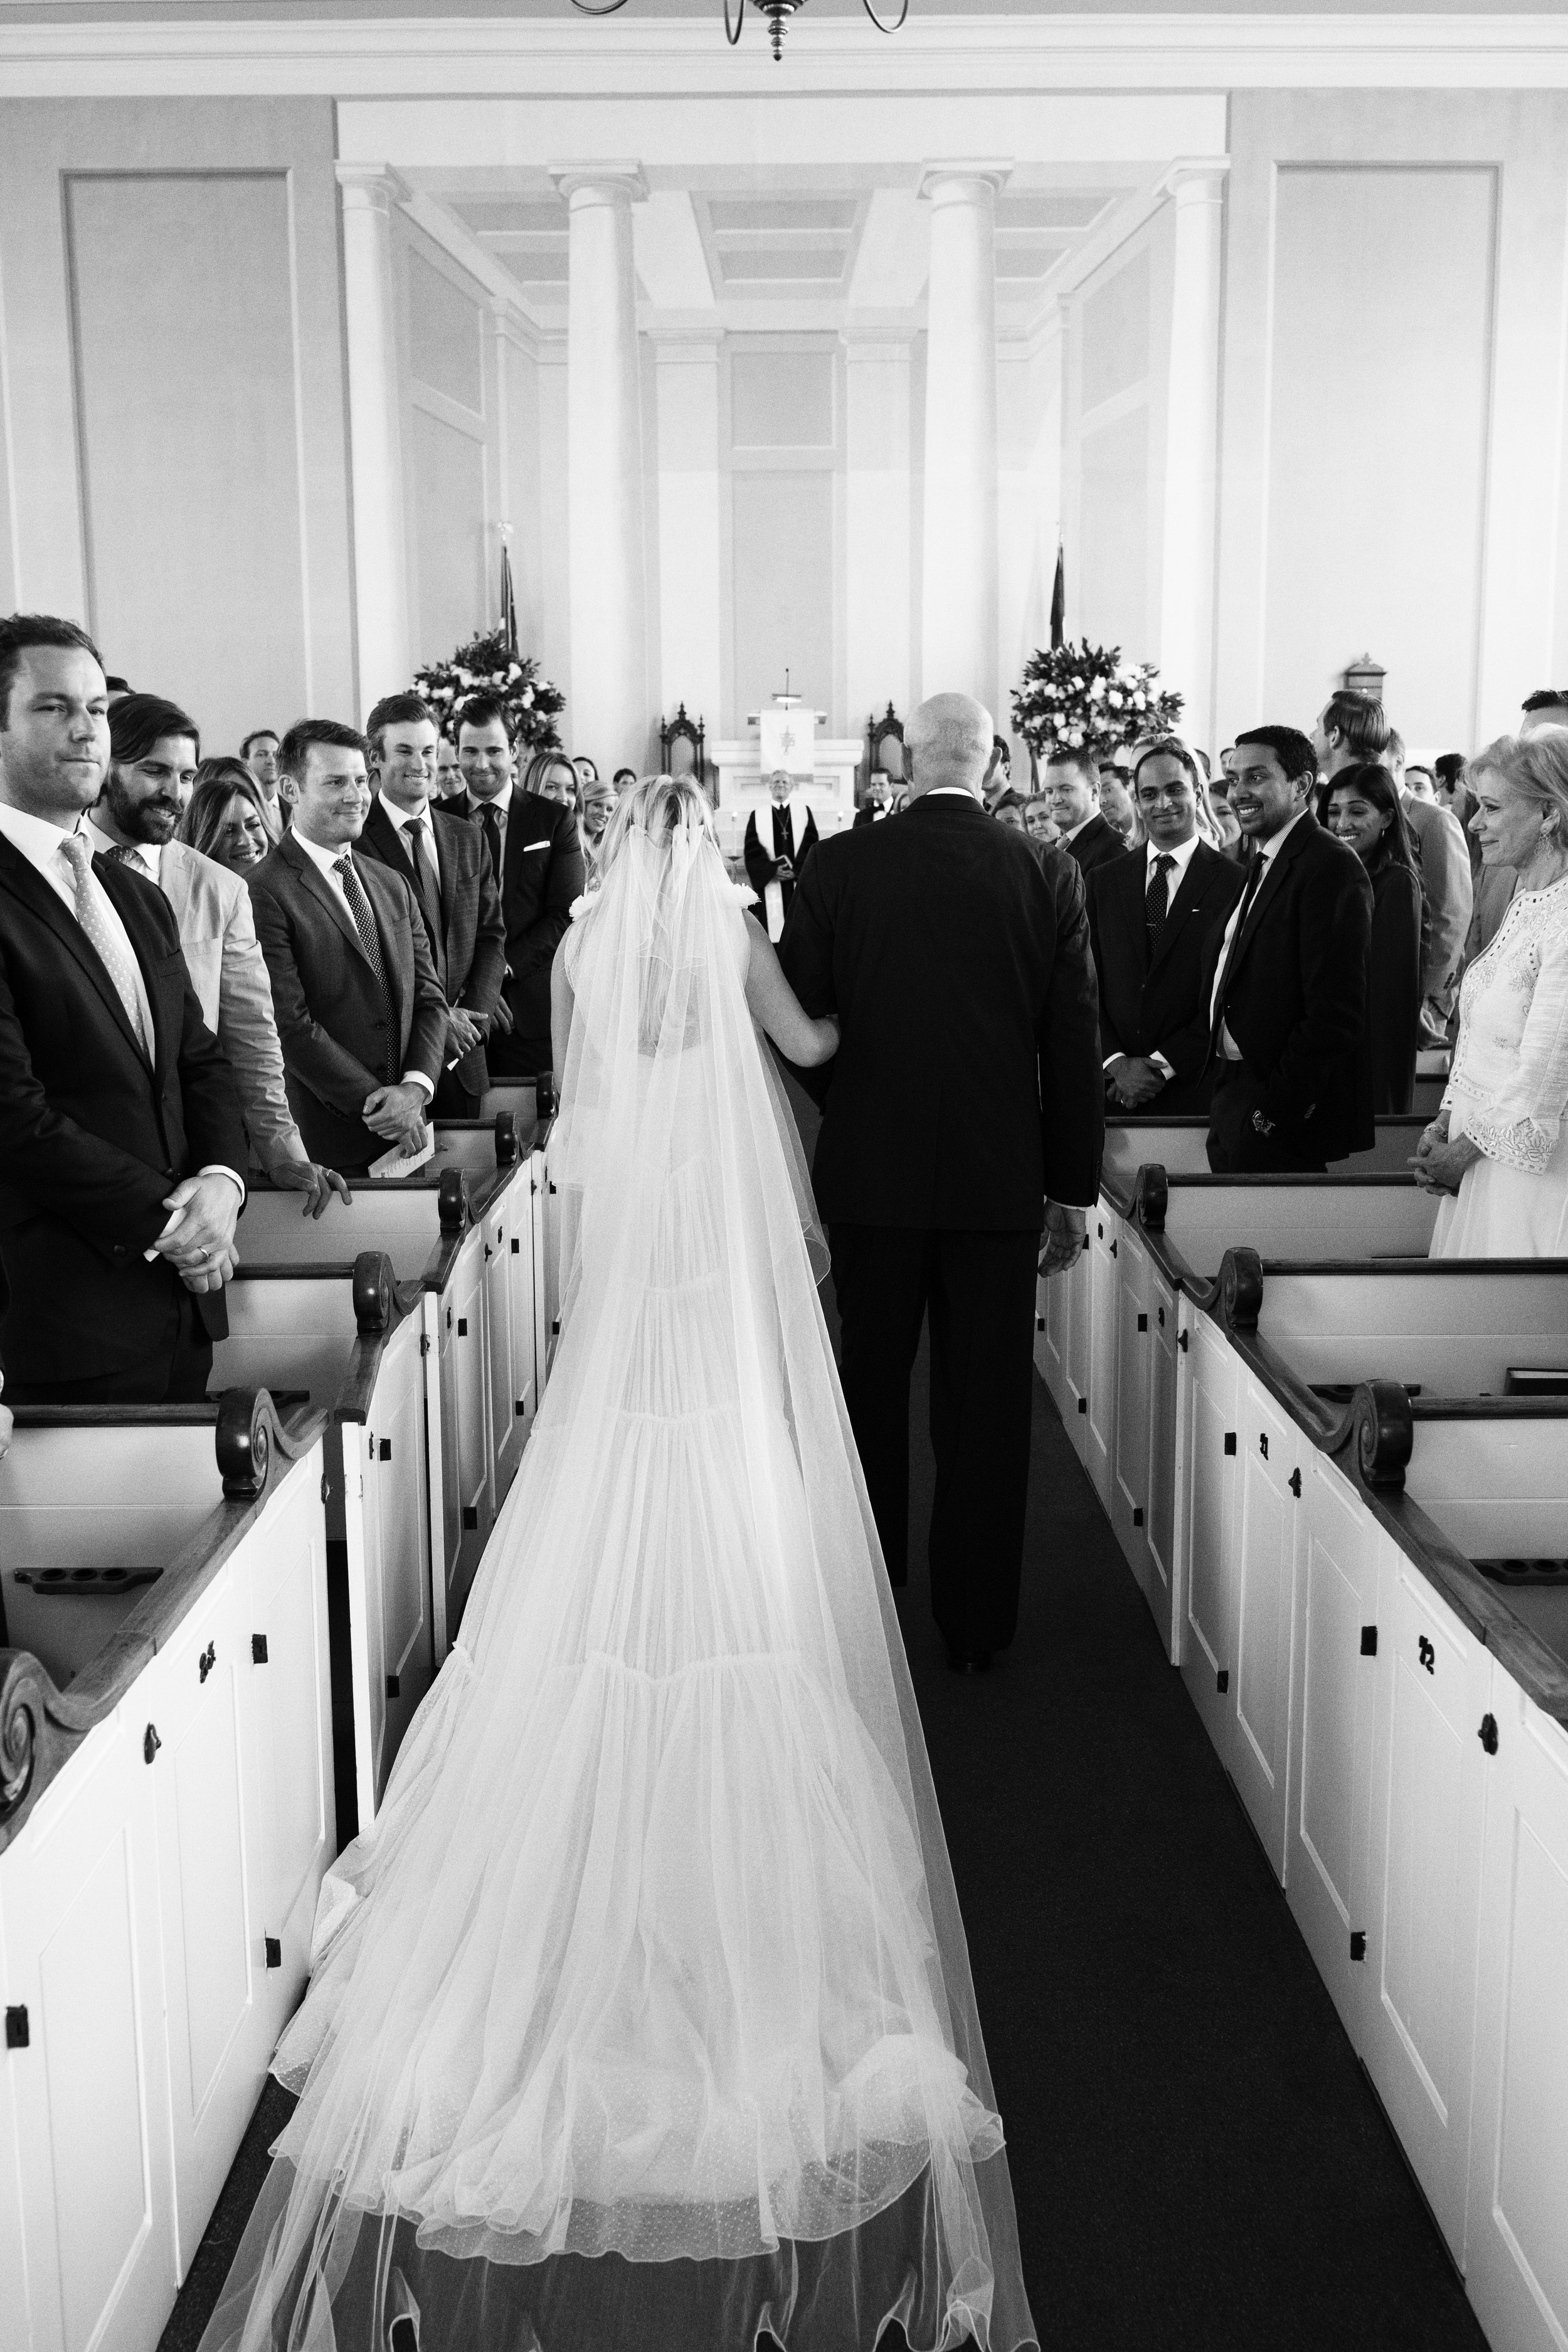 Miles Choppy Wedding Photographed by Nathan Coe